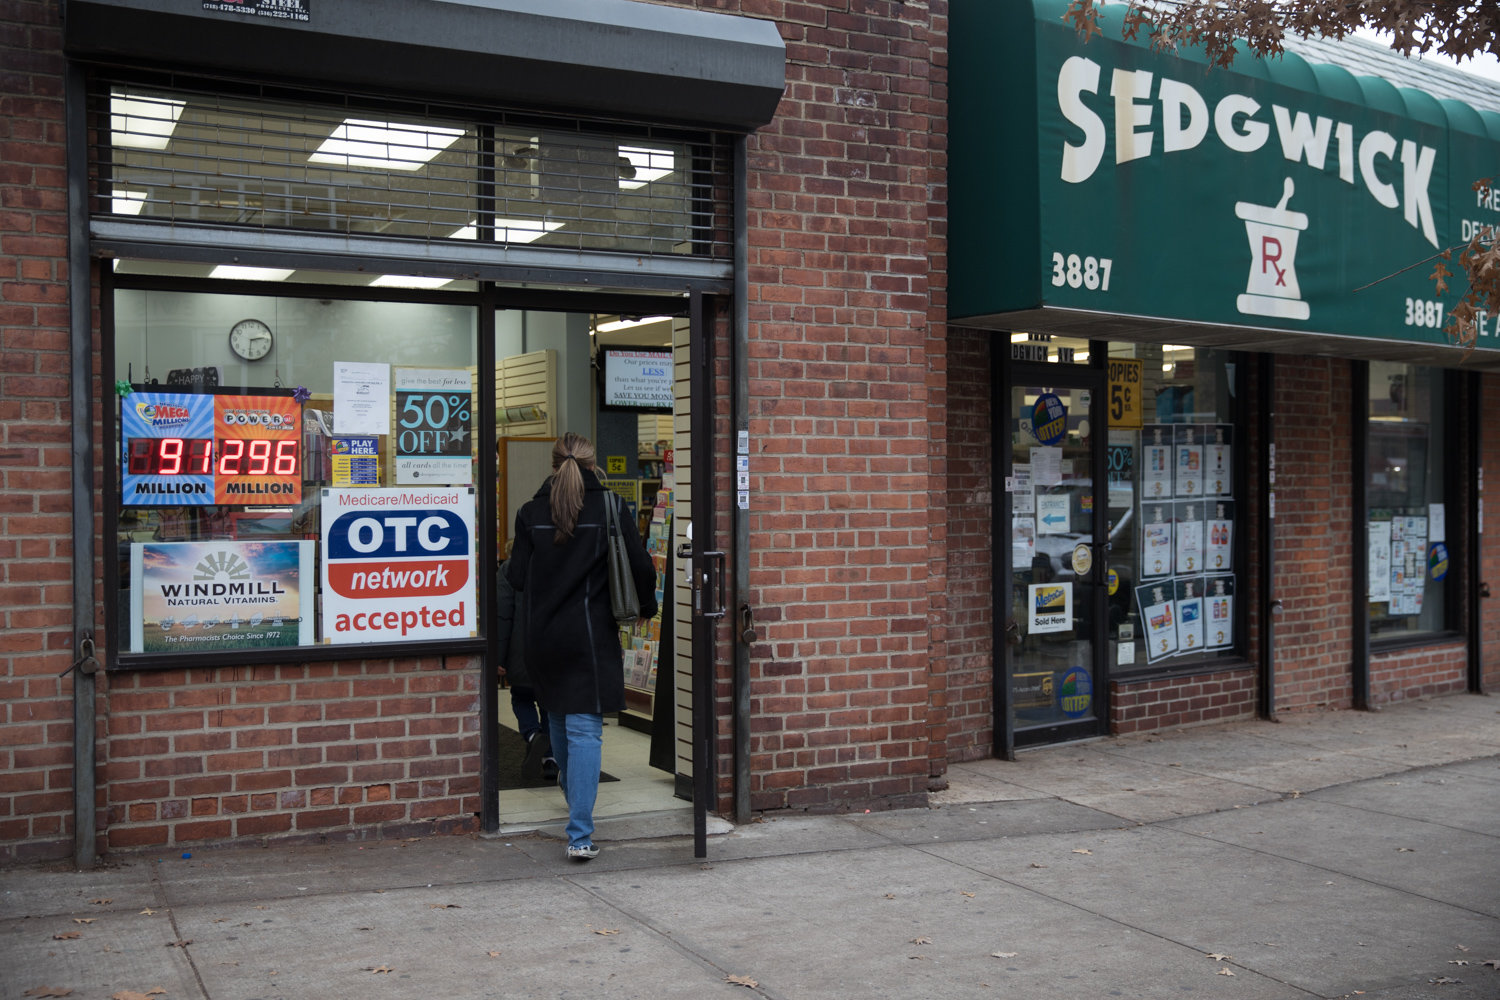 Sedgwick Pharmacy, like many neighborhood pharmacies, is struggling when it comes to pharmacy benefit managers, the middlemen between them and the drug companies. Gov. Andrew Cuomo vetoed a bill co-sponsored by state Sen. Gustavo Rivera last year that would have regulated pharmacy benefit managers in an attempt to shore up fair pricing.